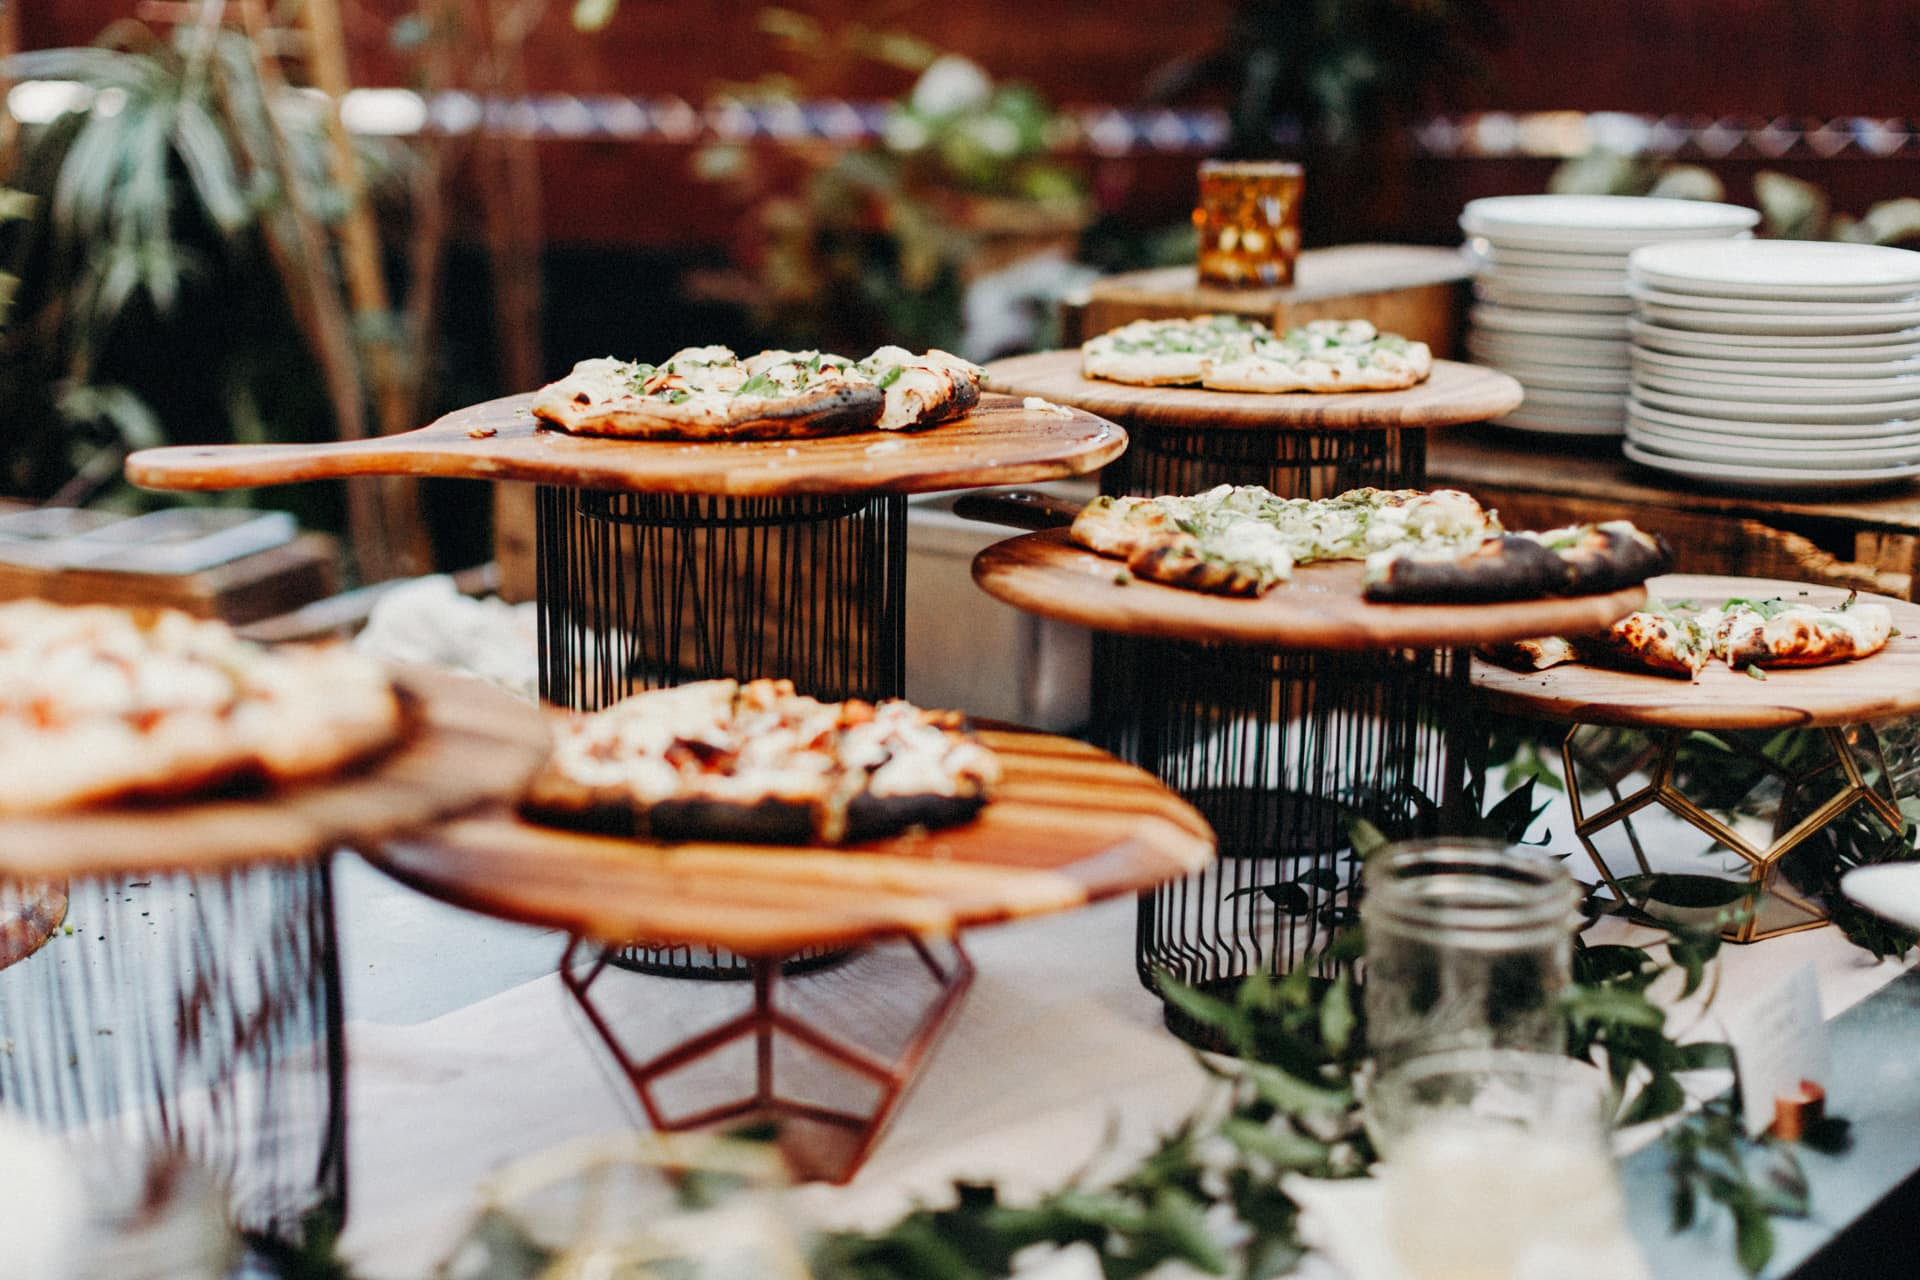 Dinner is served, pizza and cocktails, at the stable cafe wedding